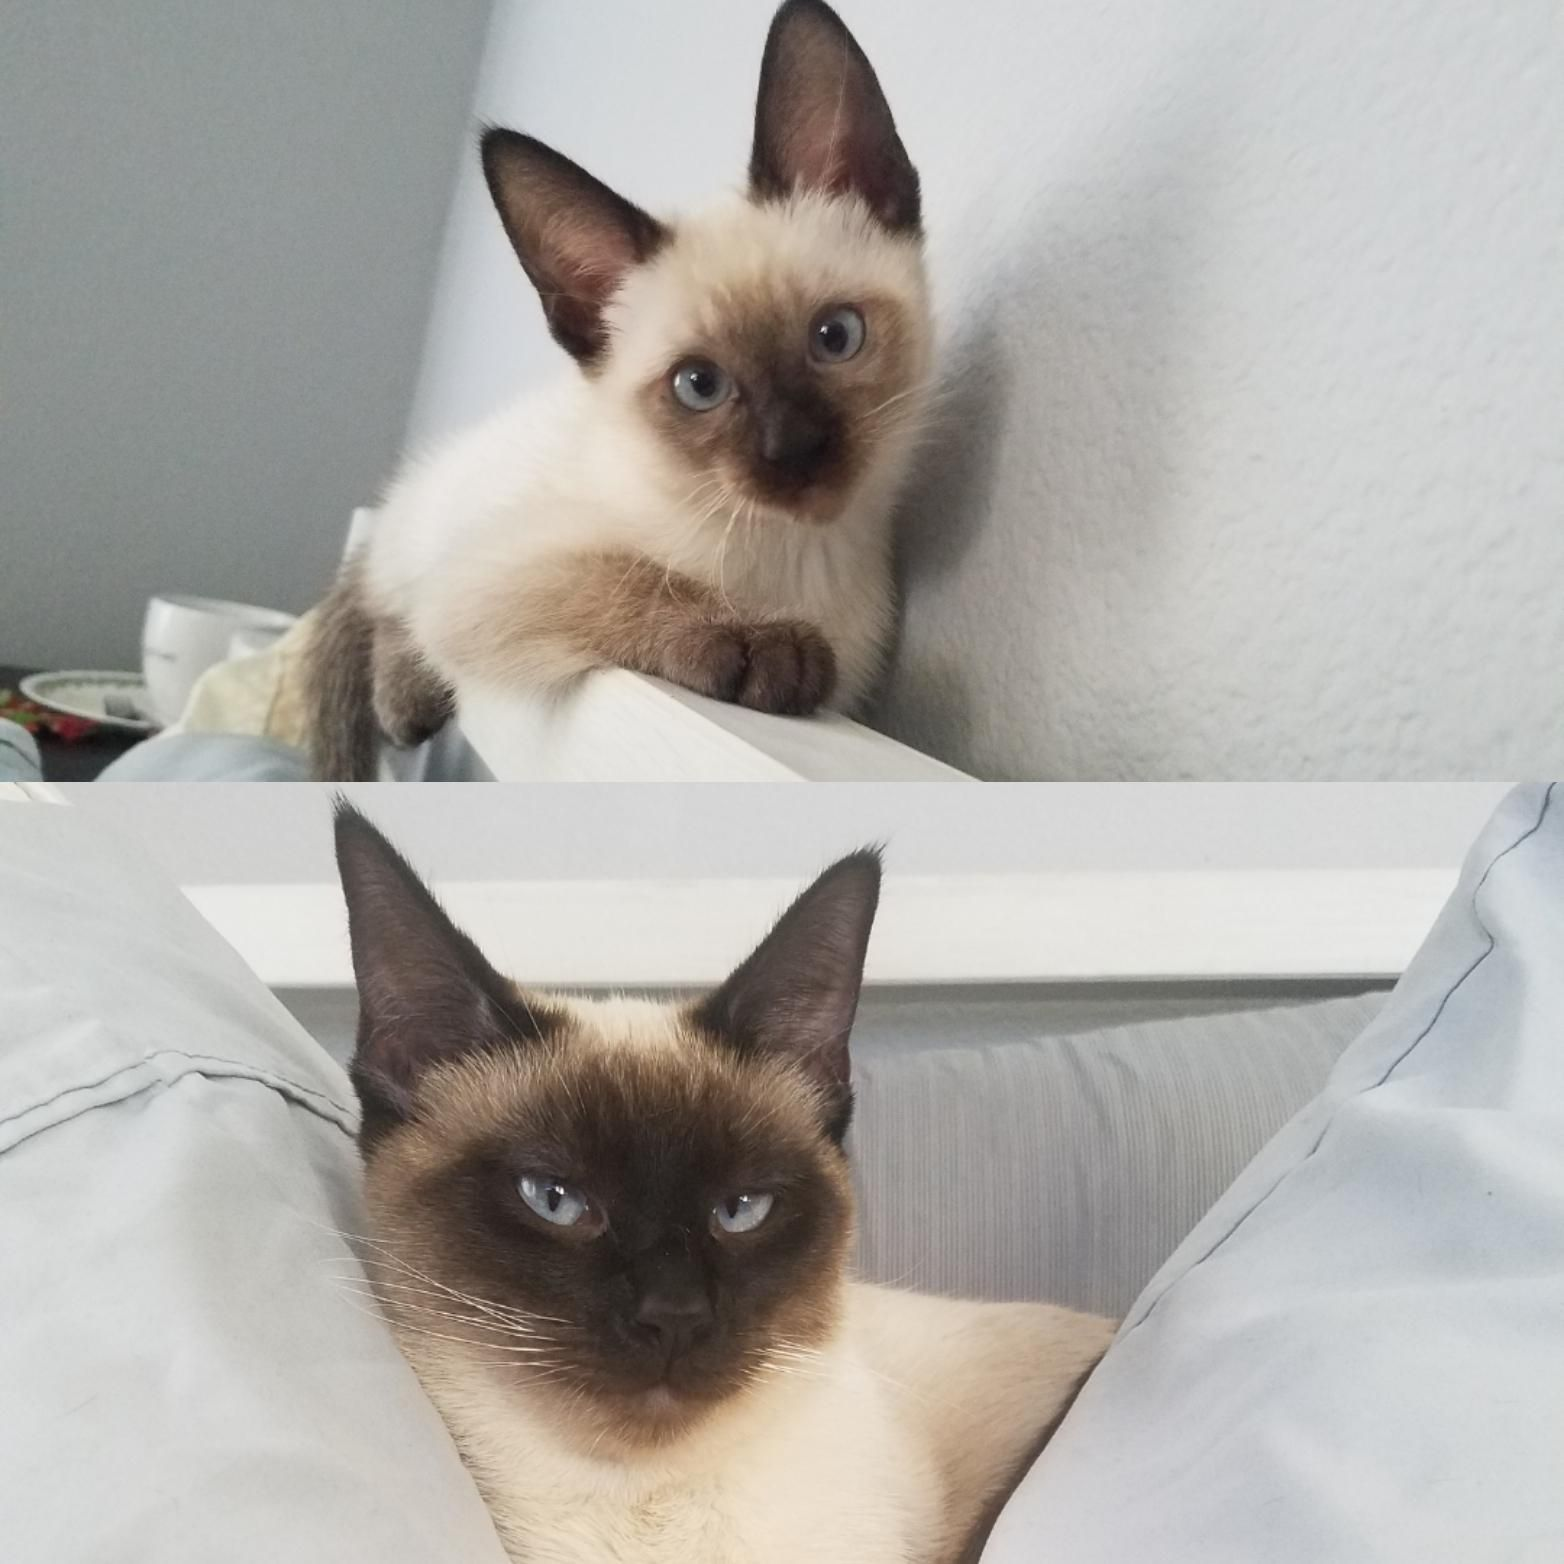 My Siamese Kitten At 3 Months Vs 11 Months The Top Picture Makes Her Look Eyebrowless Aww Cute Animals Cats Dogs Siamese Kittens Cats Siamese Cats